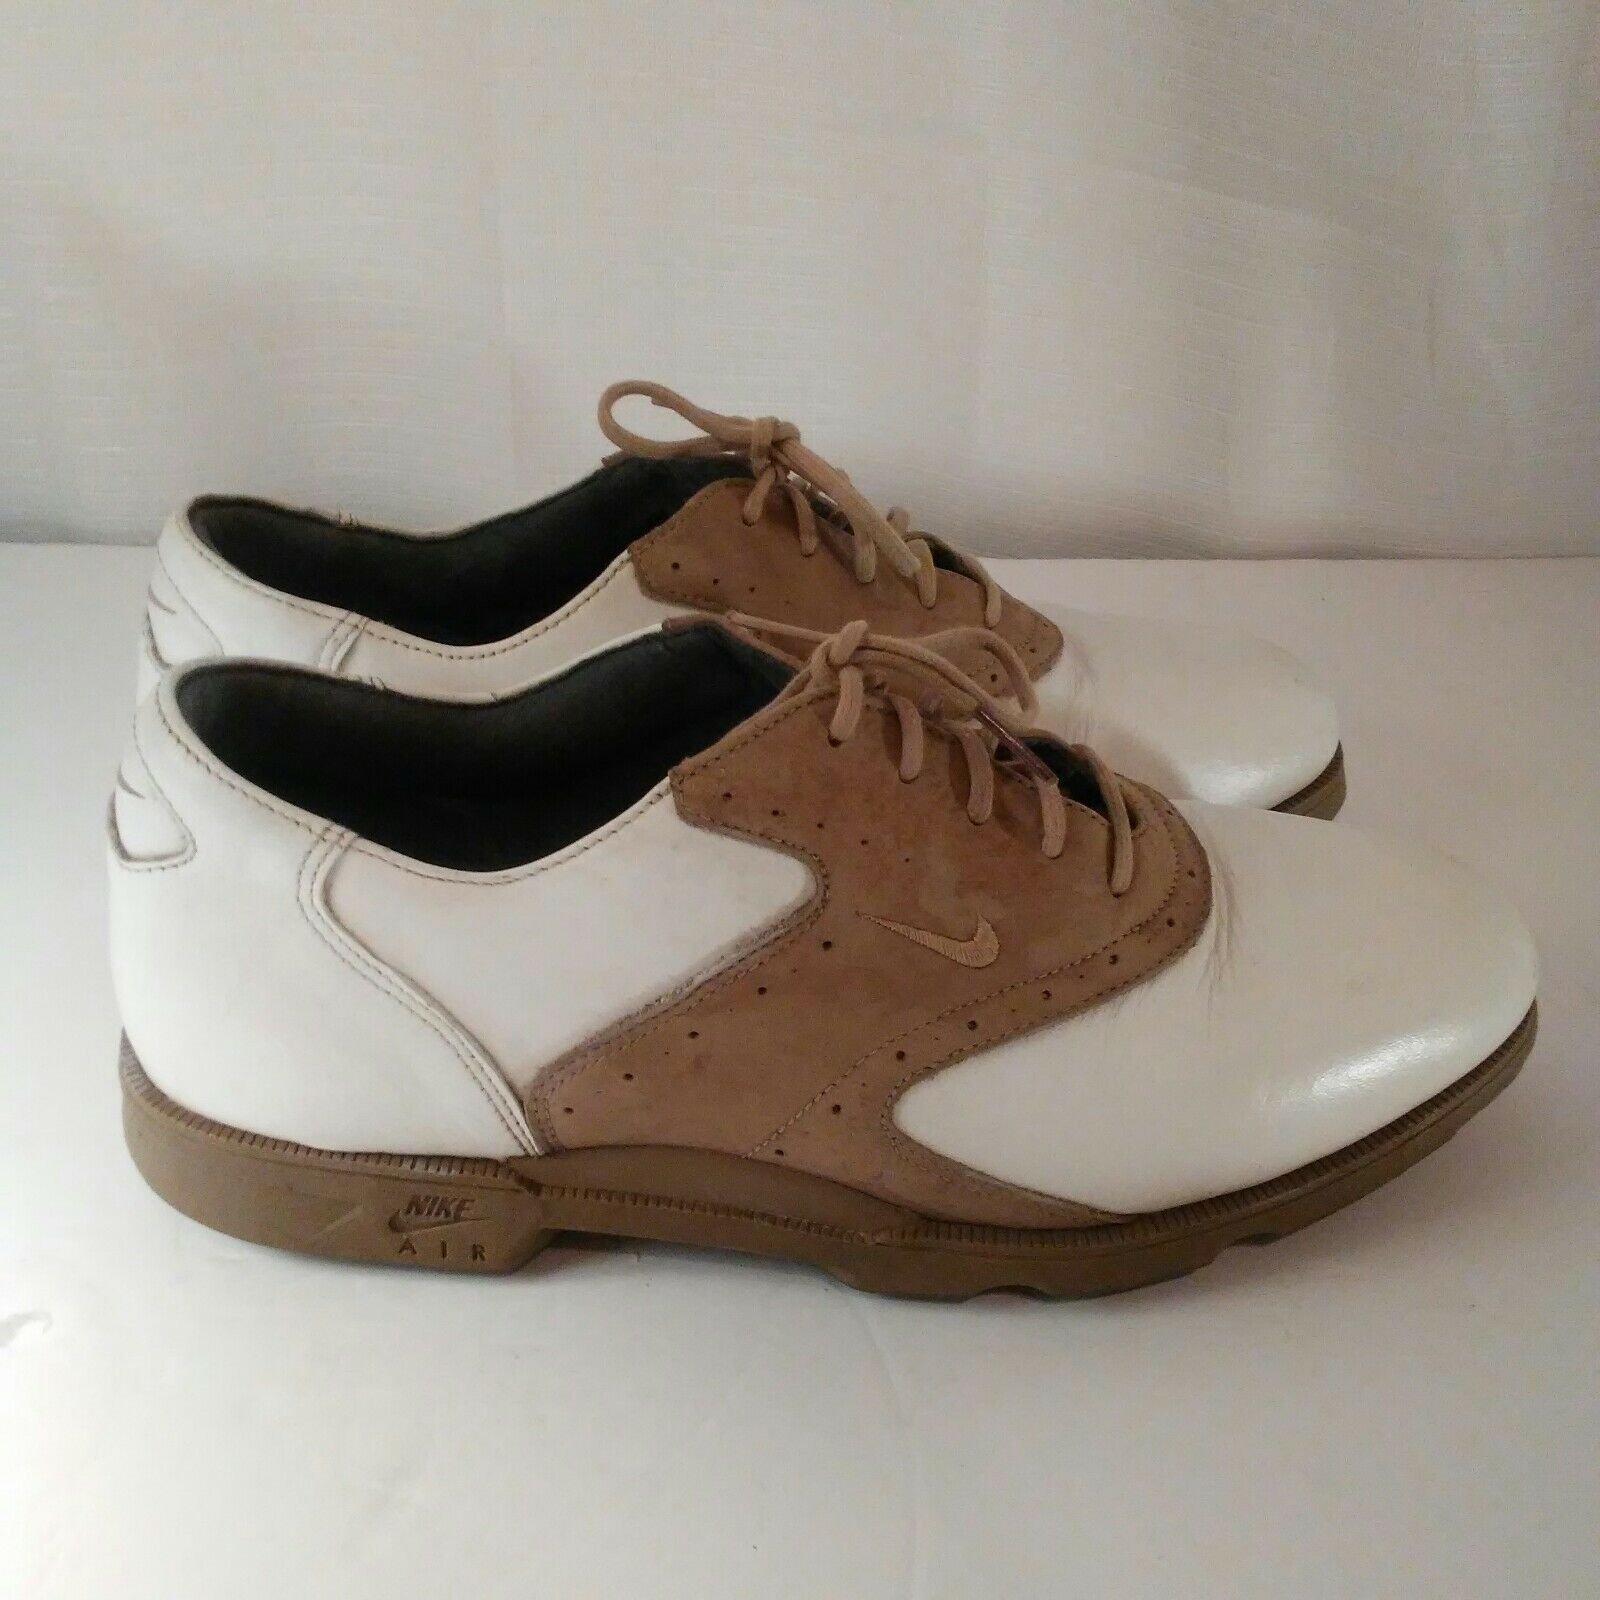 Nike Air Classic Plus White & Brown Saddle Golf Shoes Size 9